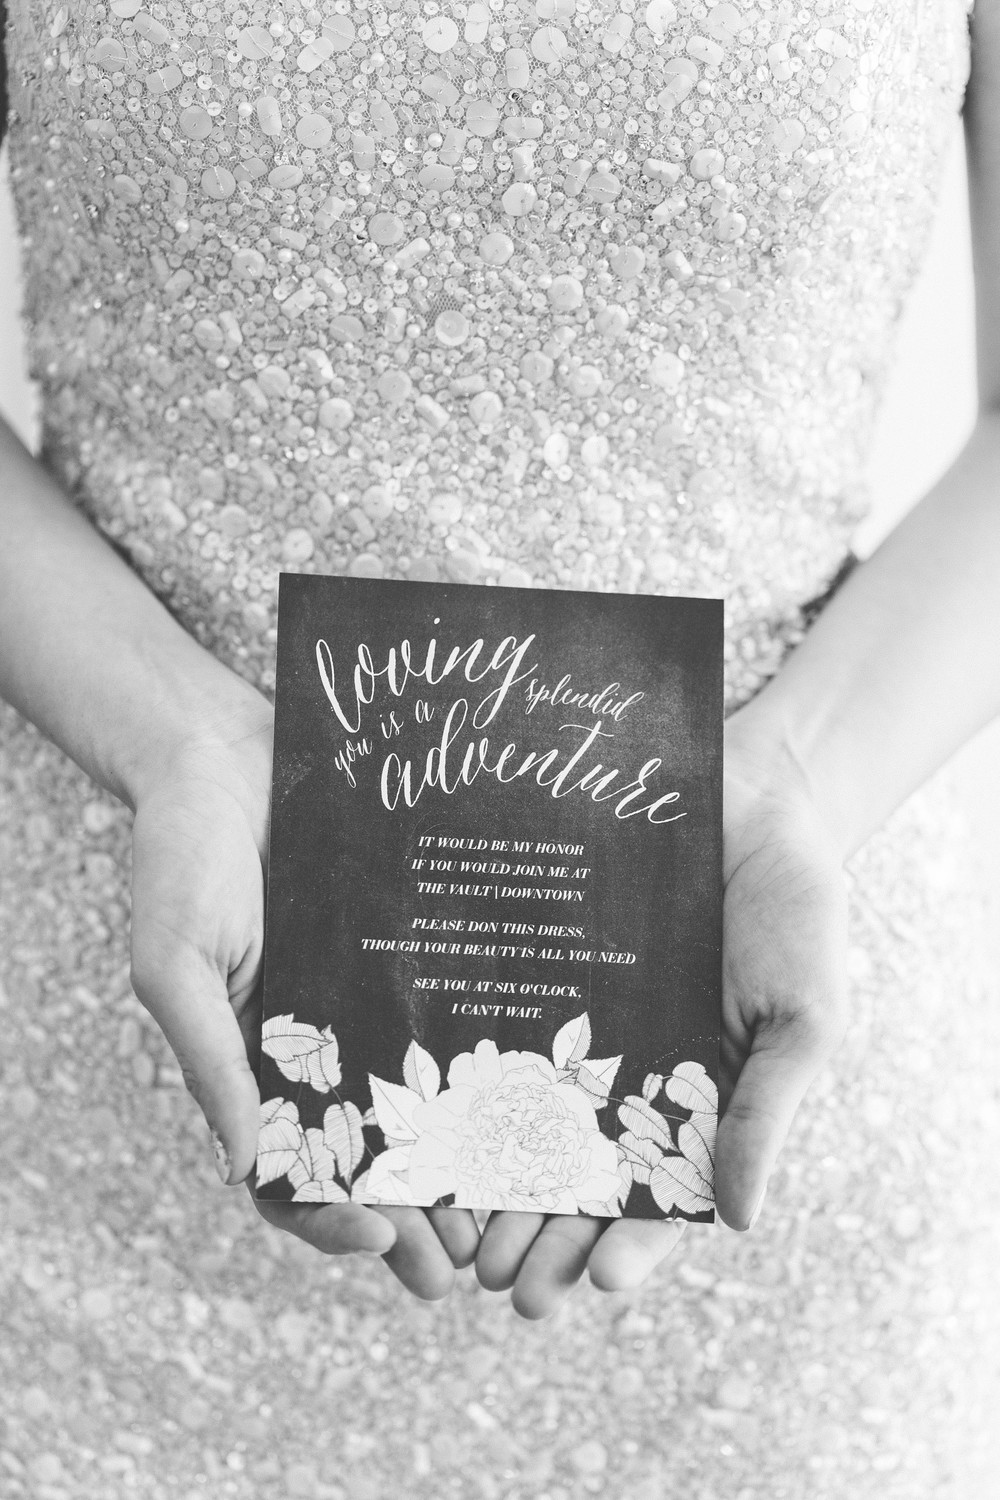 Black and White Wedding Inspiration - Oh Hello Events, Tampa Wedding Planner